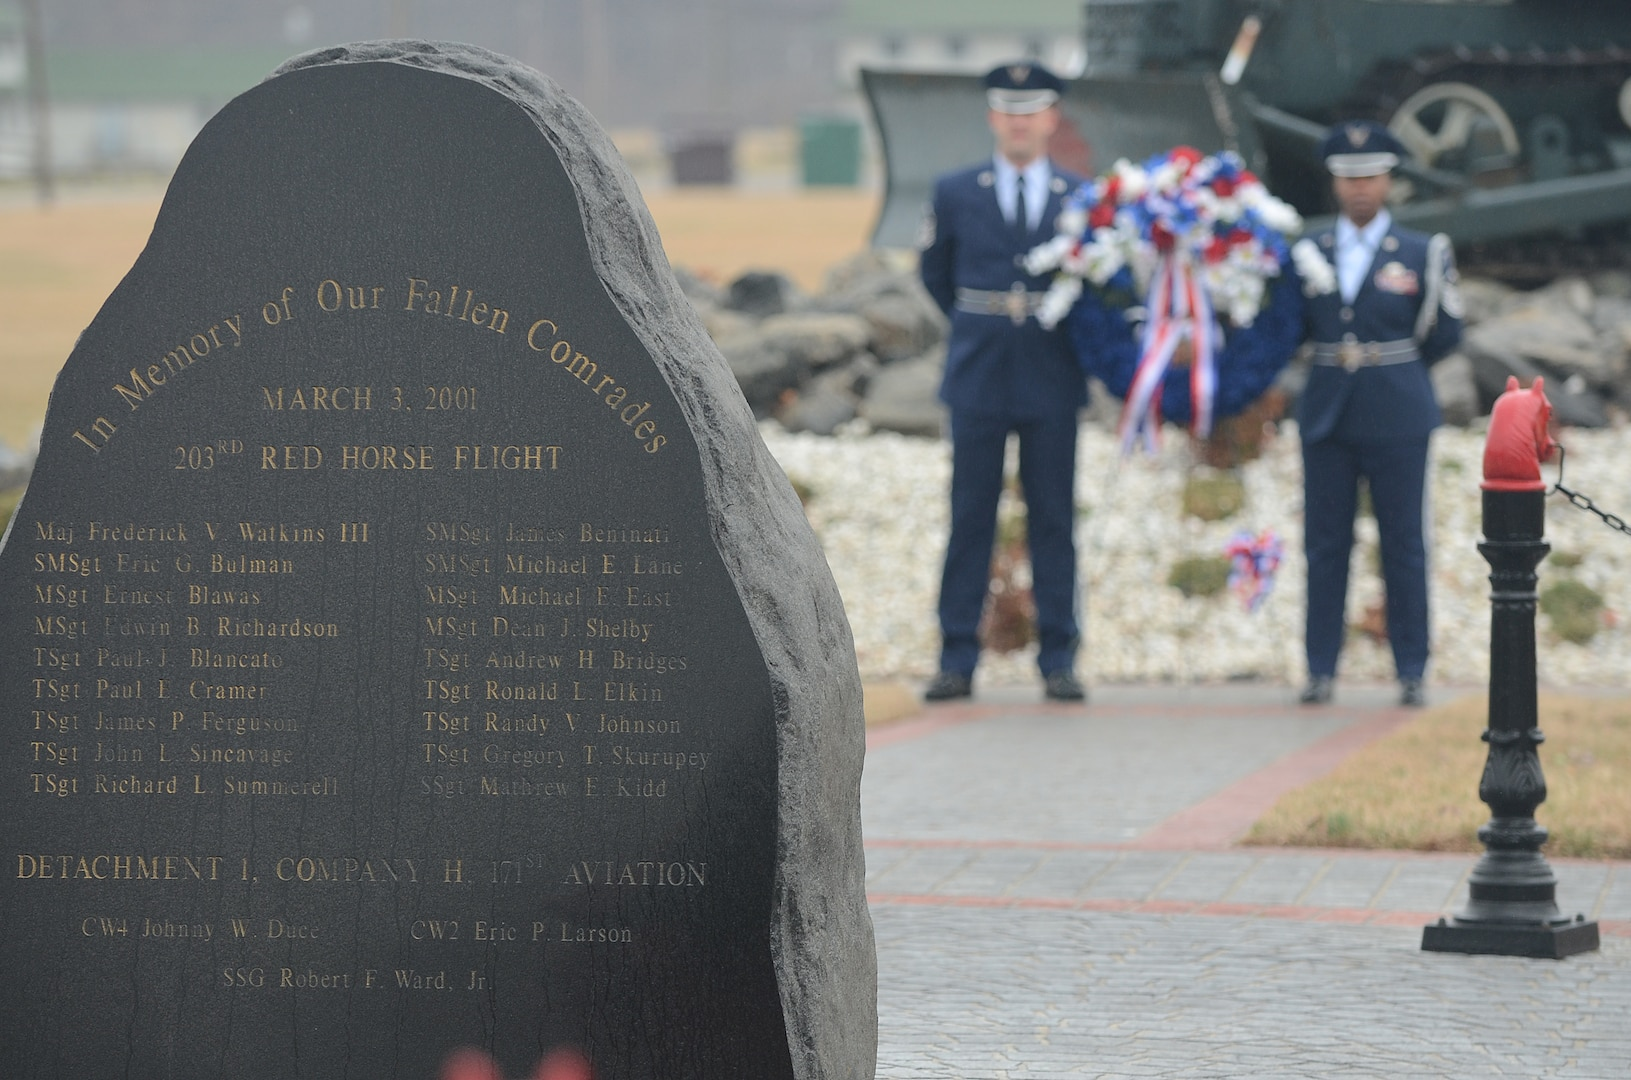 Memorial service honors 18 Airmen from 203rd RHS killed in 2001